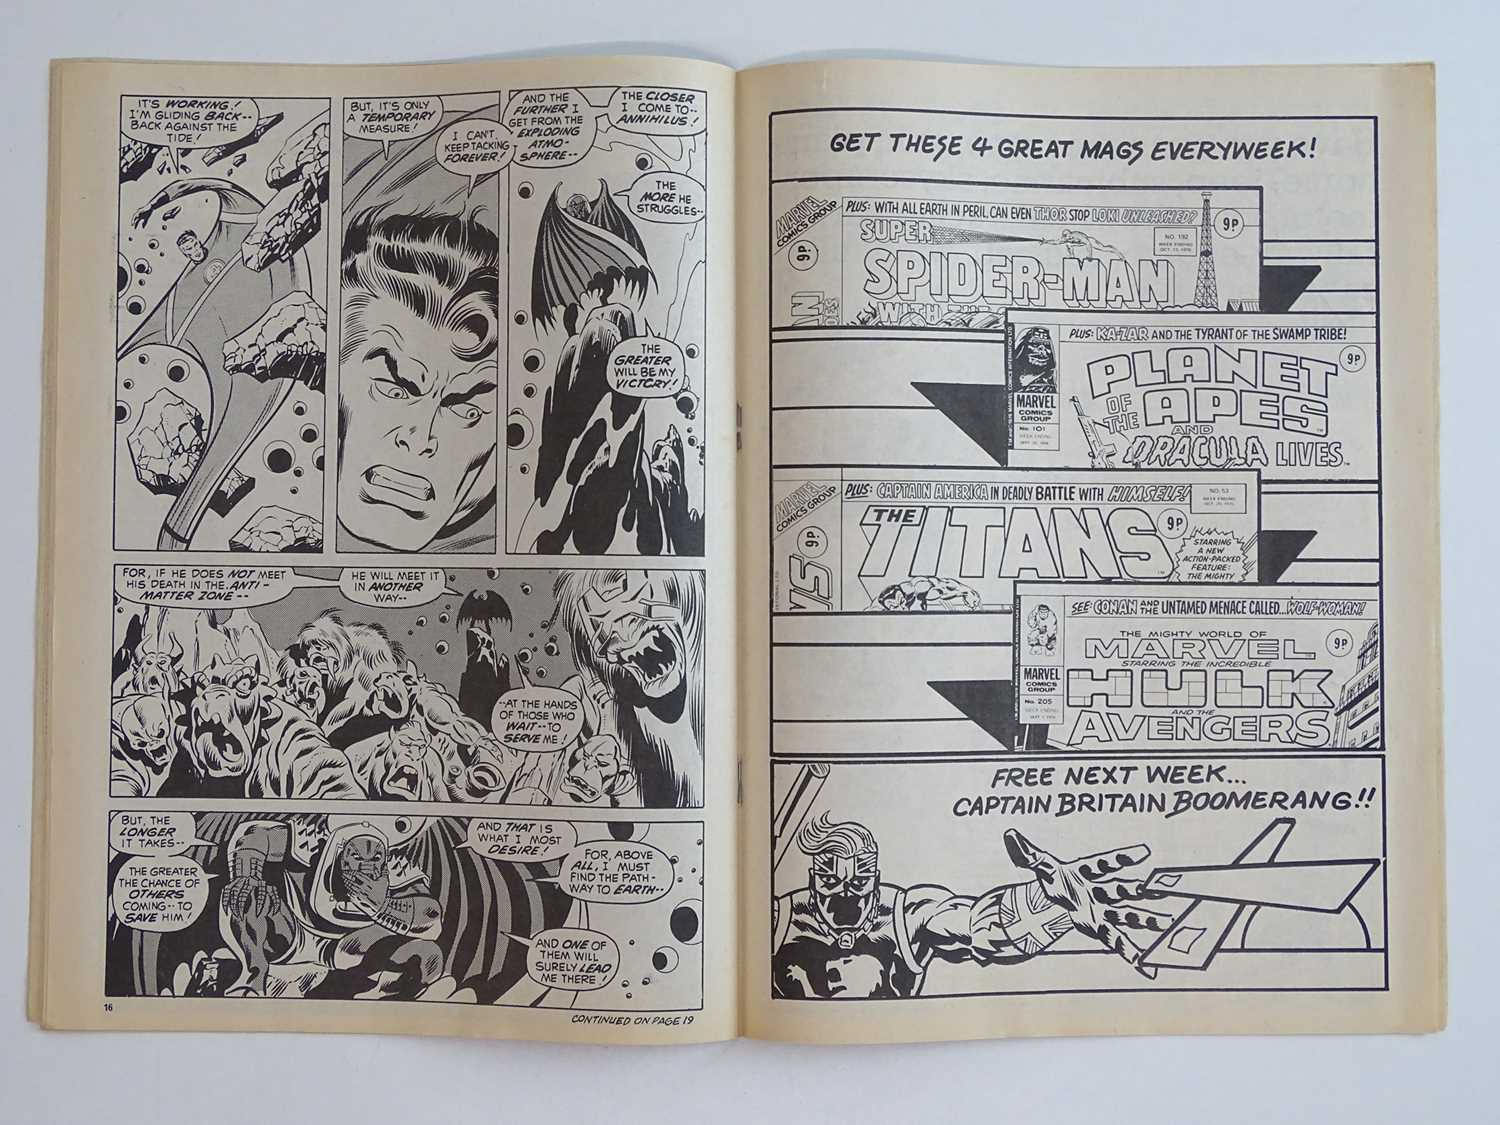 CAPTAIN BRITAIN #1 - (1976 - BRITISH MARVEL) - Origin and First appearance of Captain Britain - Image 7 of 12